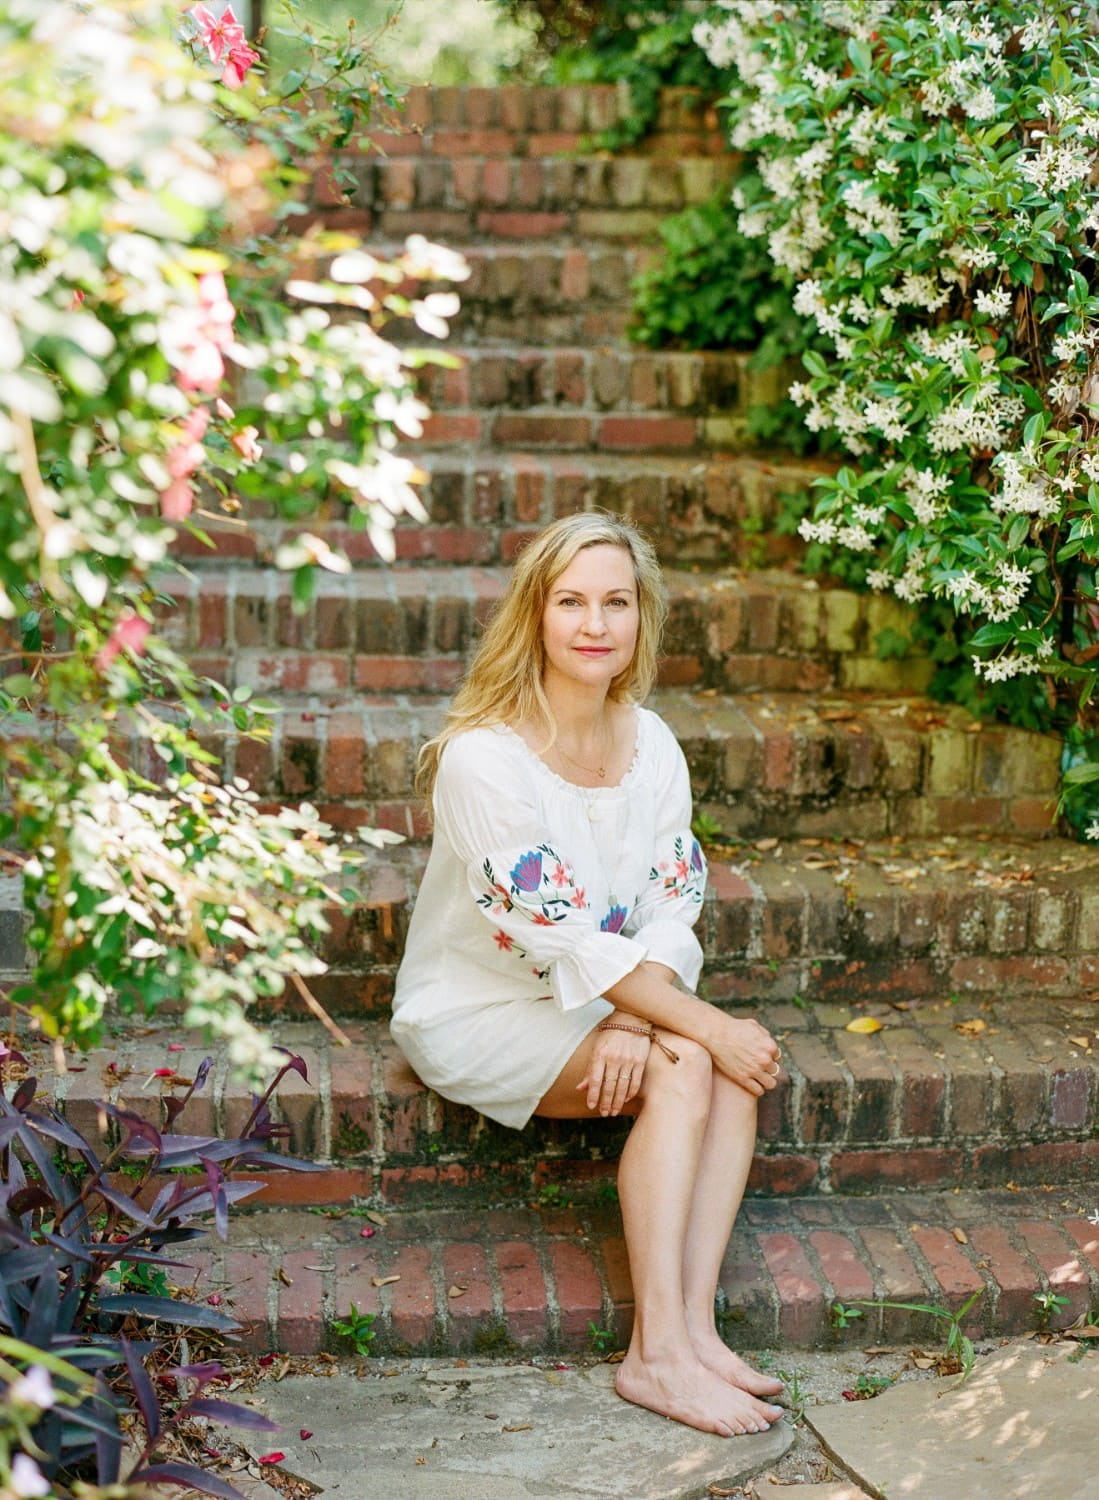 photo of honor hawkins holictic wellbeing coach sitting in stair and surrounded by flowers